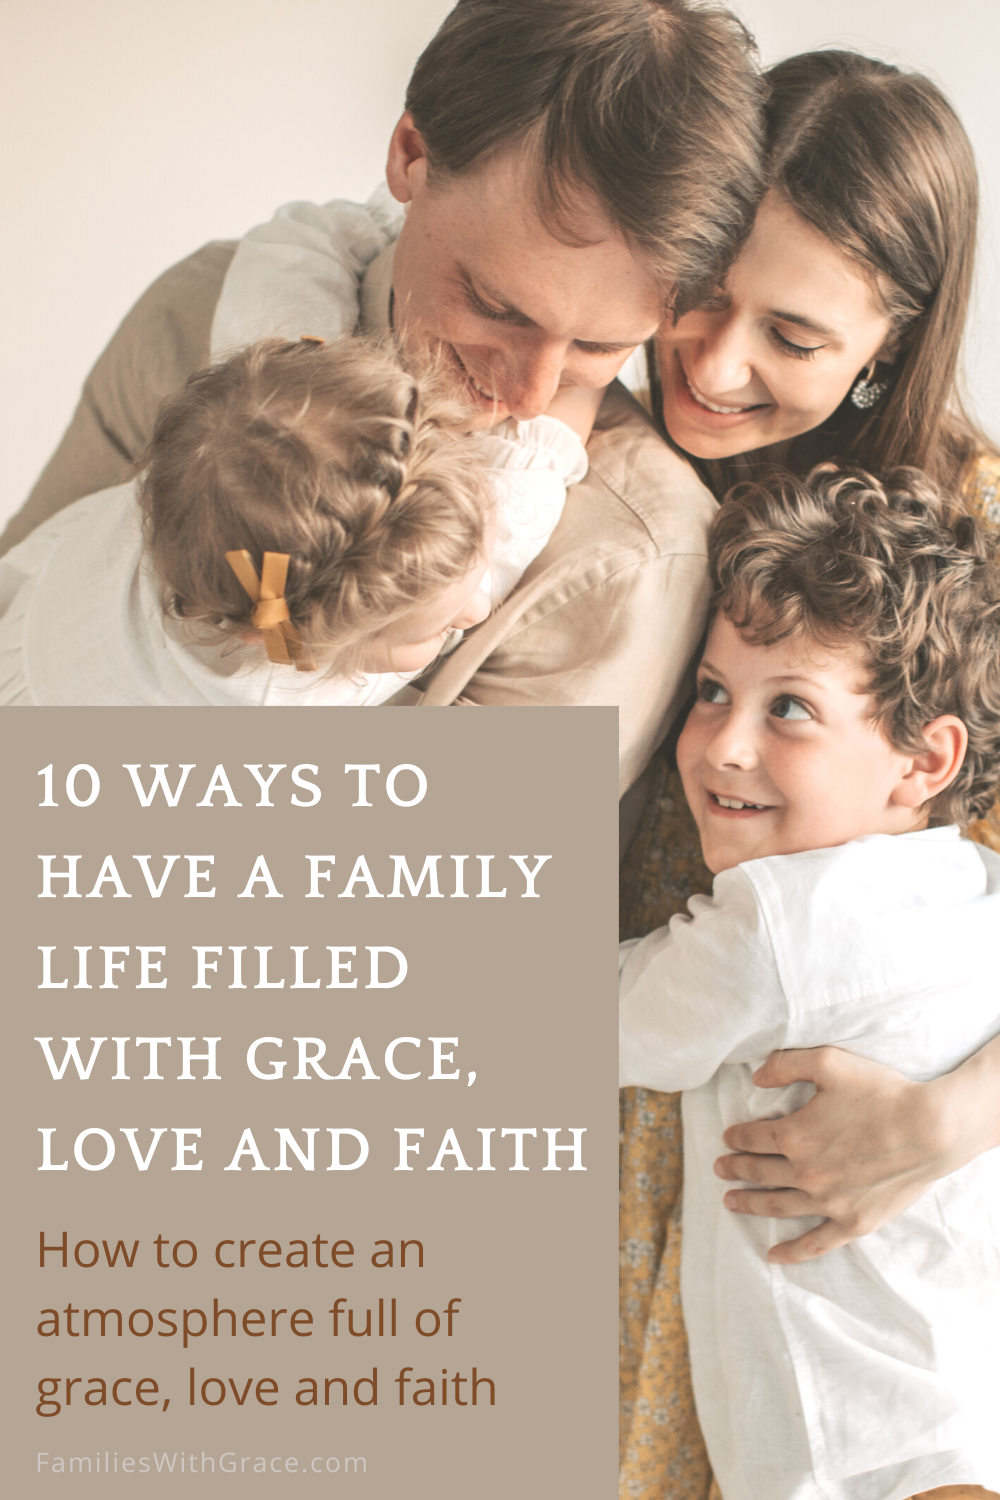 10 Ways to have a family life filled with grace, love and faith